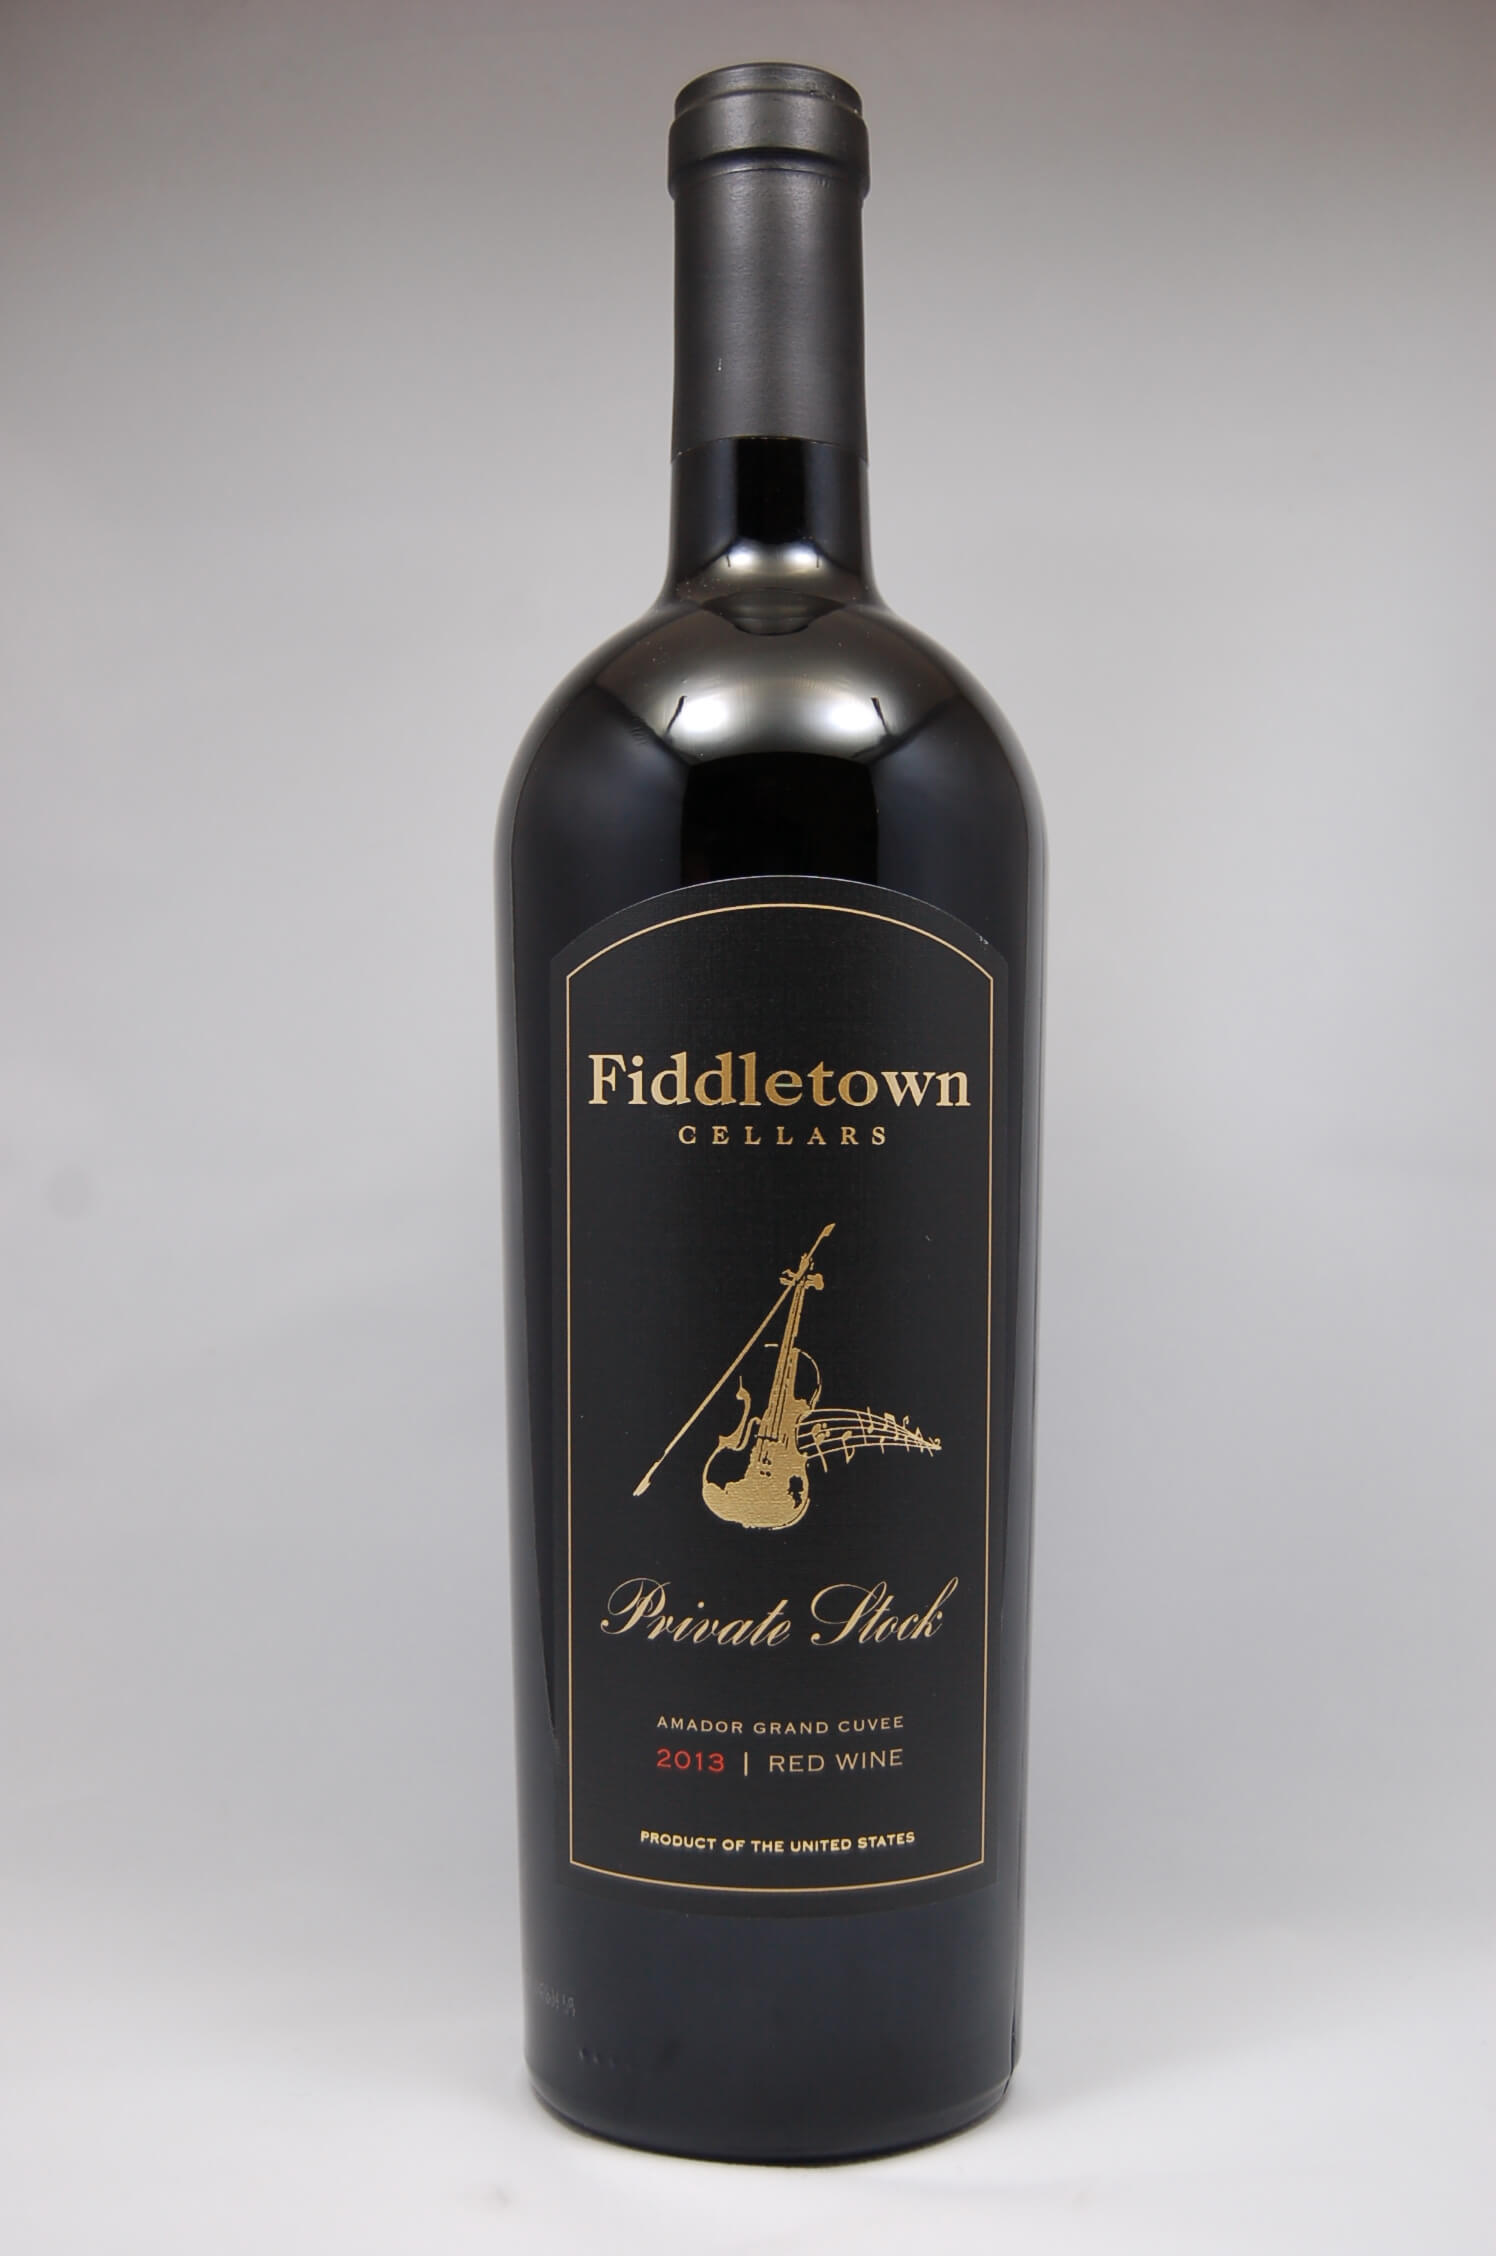 Fiddletown Cellars 2013 Private Stock